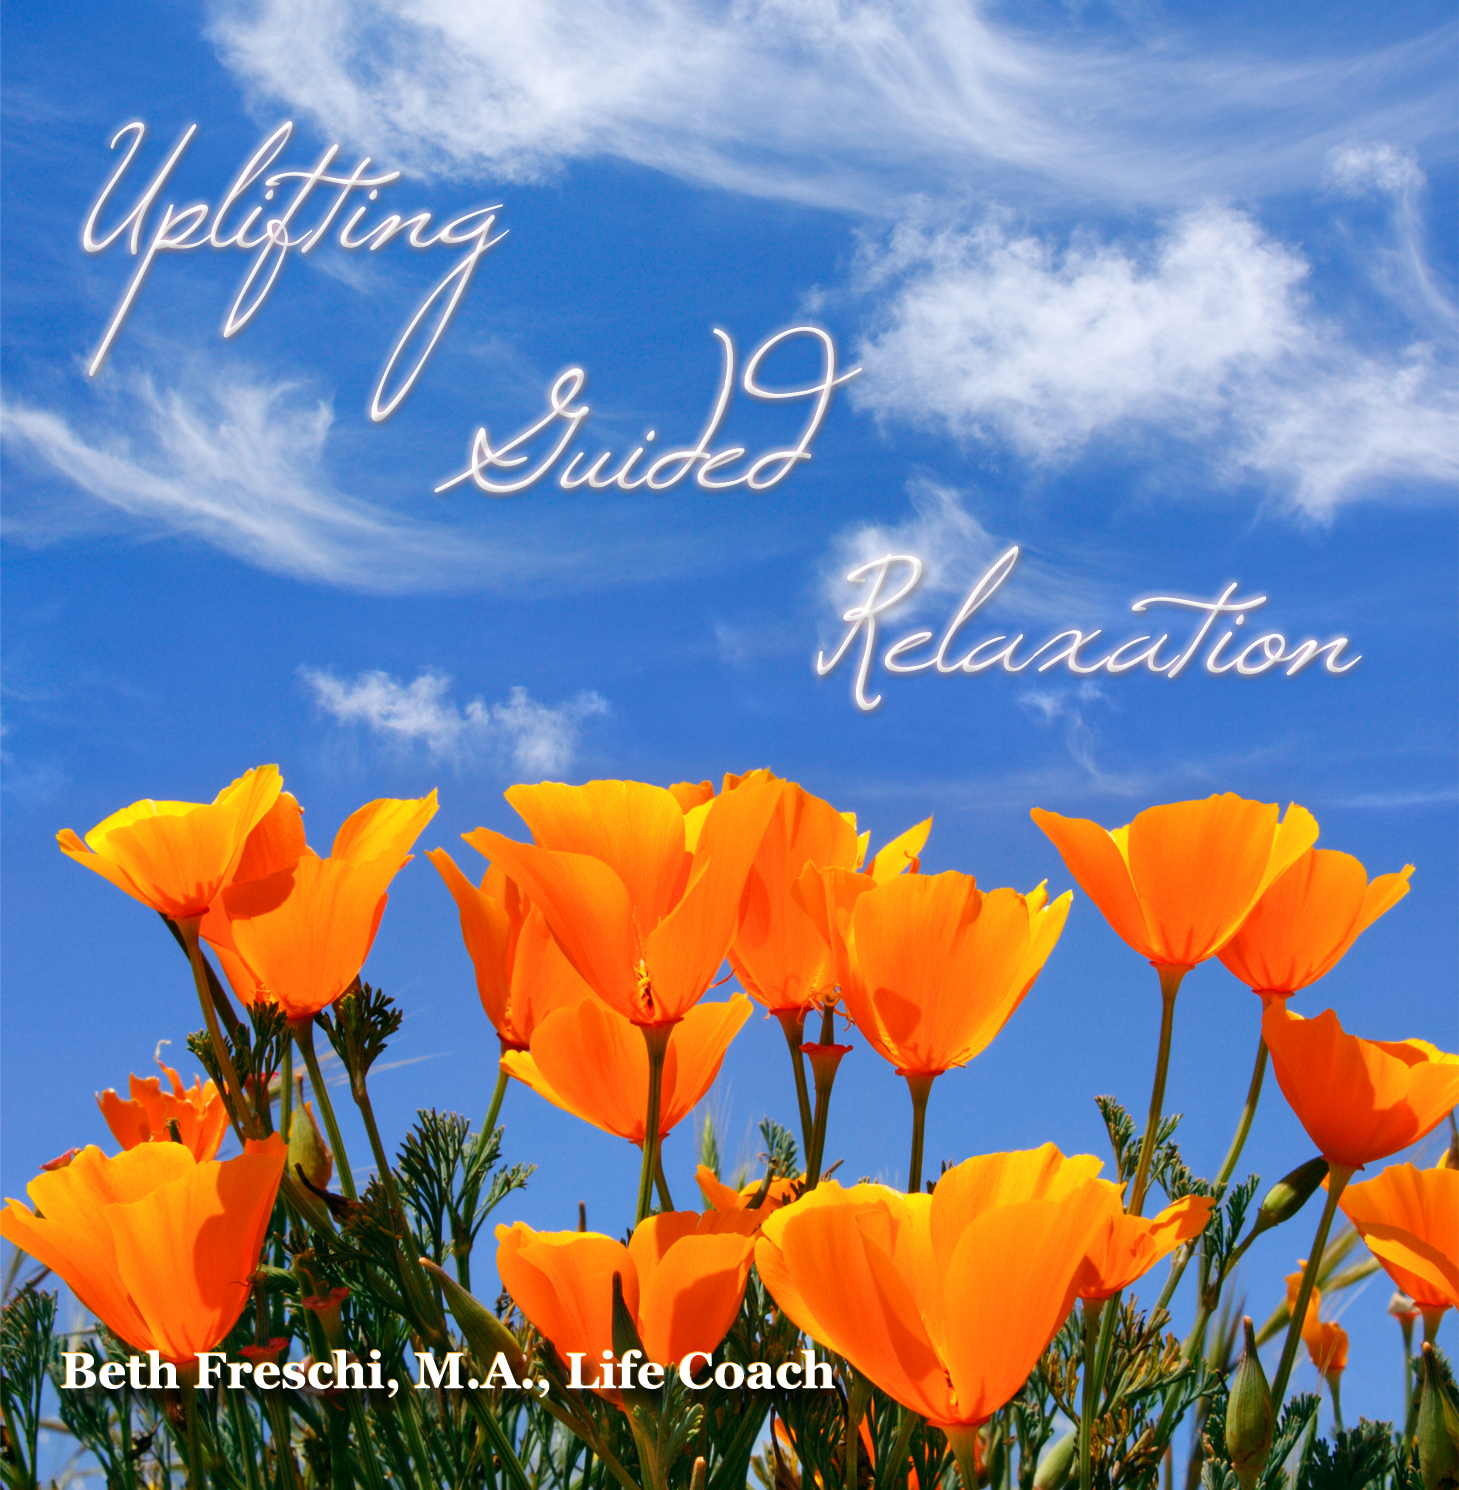 Uplifting-Guided-Relaxation-frontcover.jpg